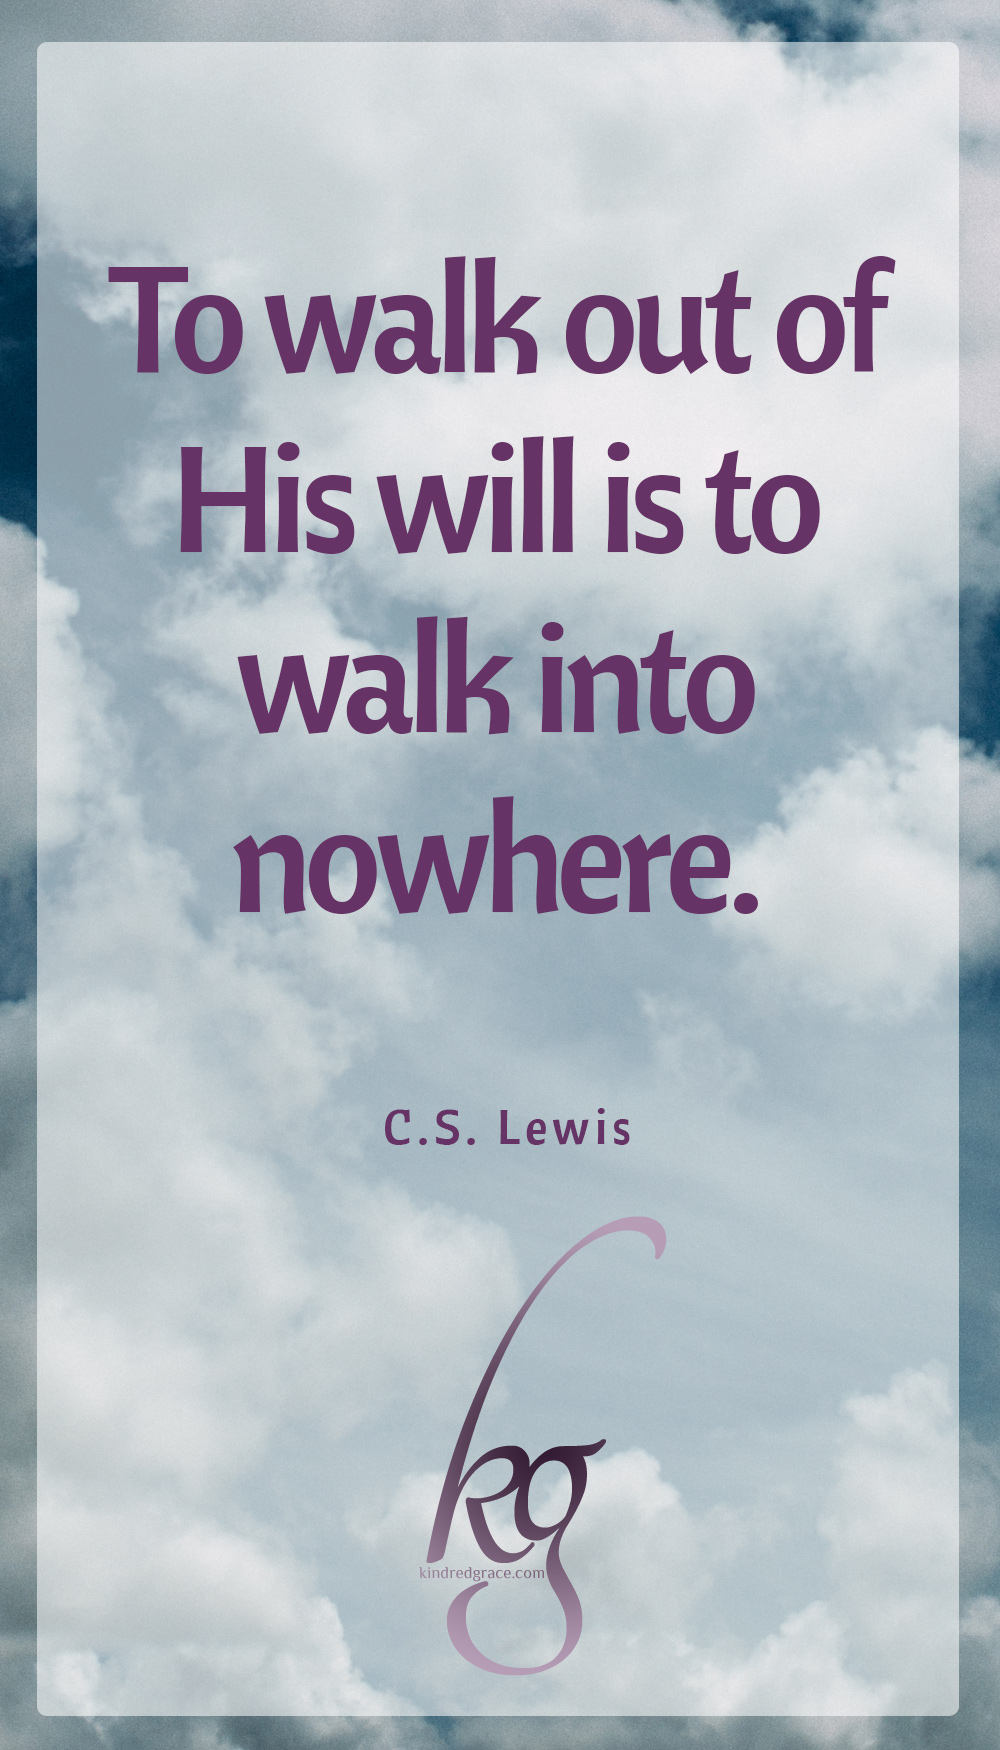 """To walk out of His will is to walk into nowhere."" (C.S. Lewis in ""Perelandra"")"